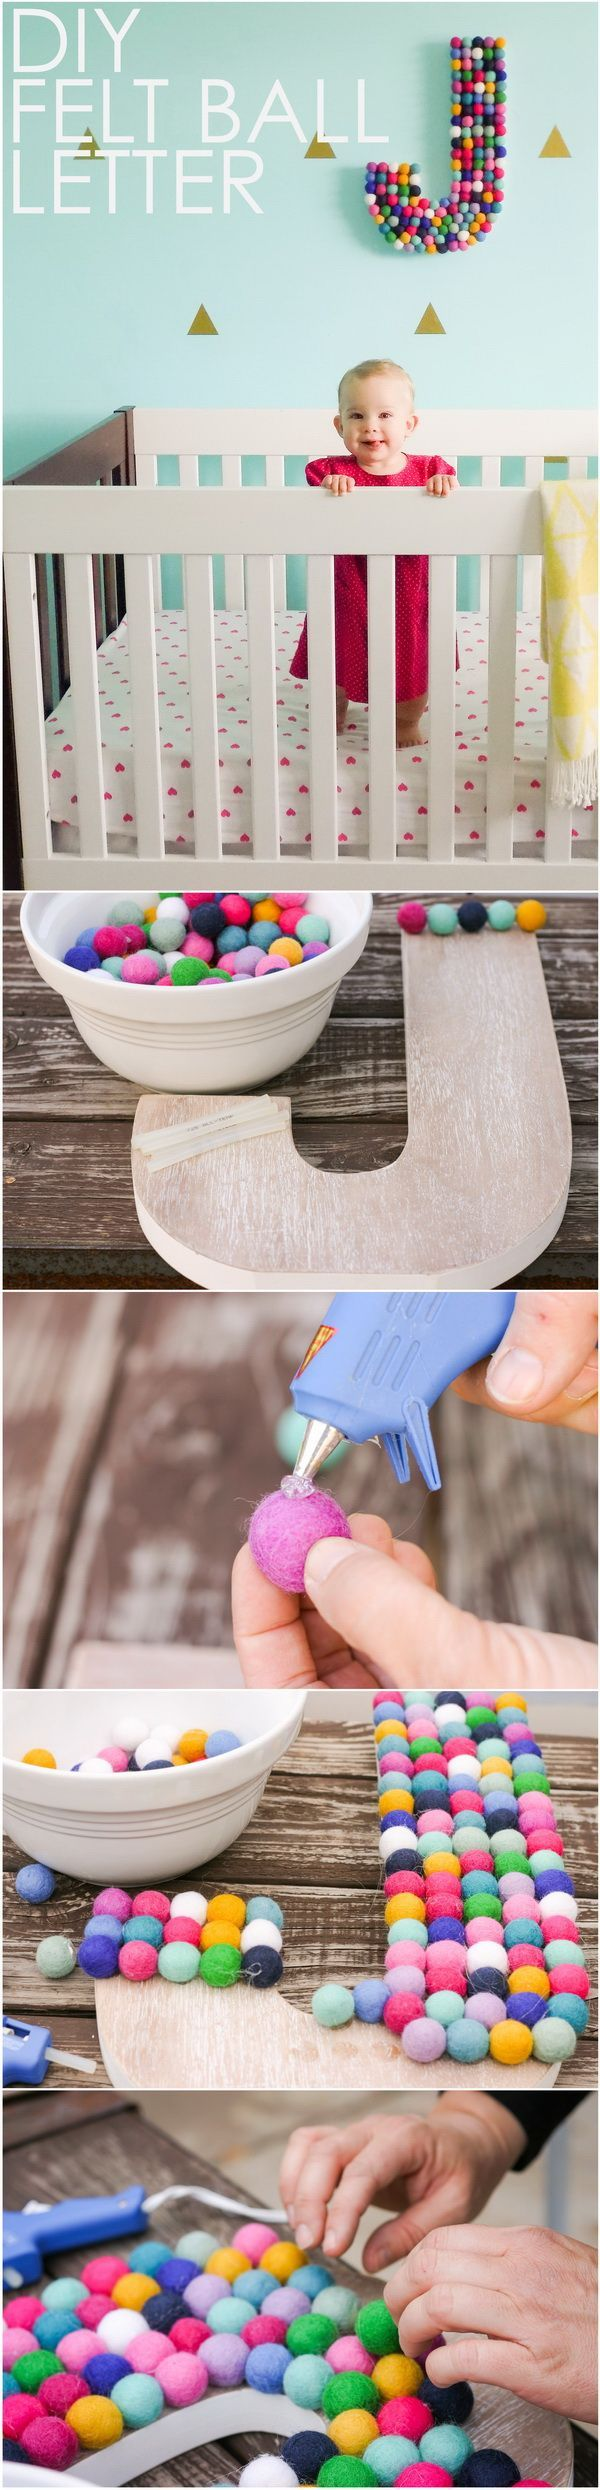 DIY Felt Ball Letter. Felt balls add a quirky, whimsical touch to any room with…